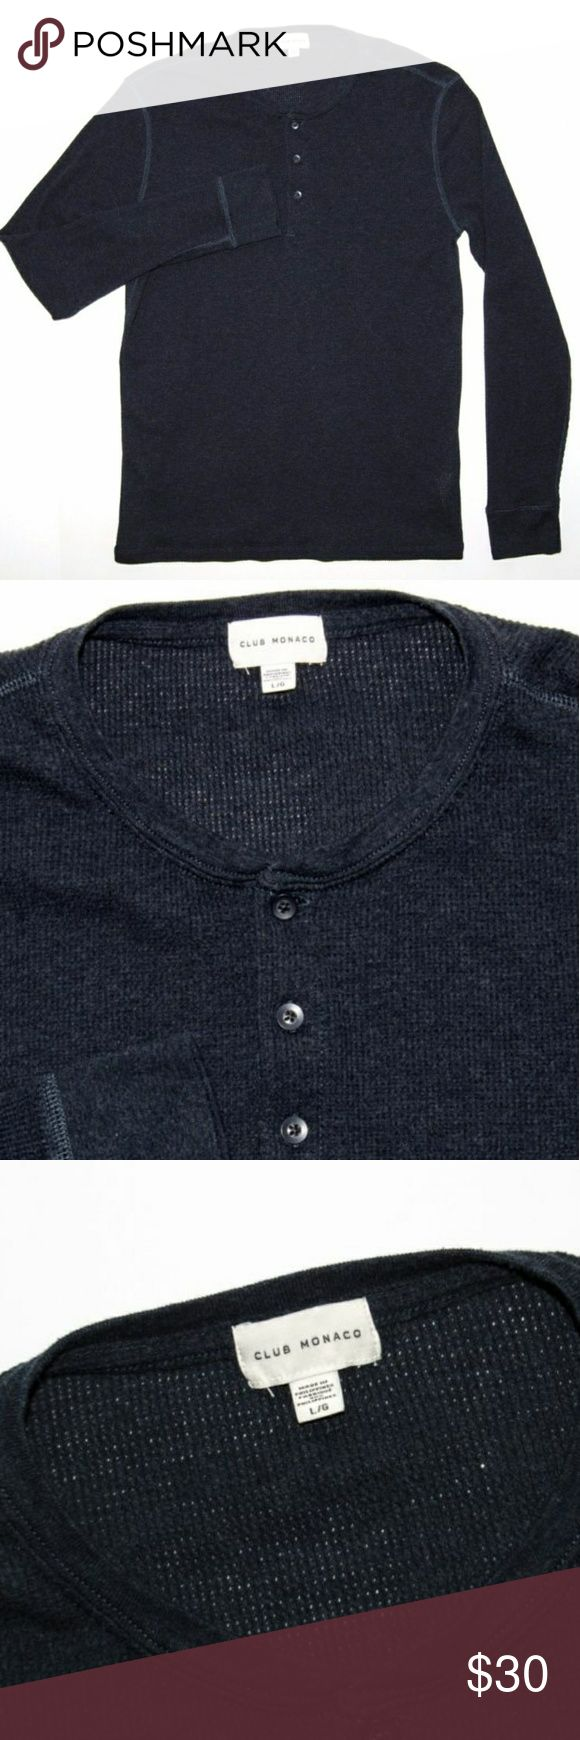 CLUB MONACO Henley SHIRT Navy blue size large CLUB MONACO Henley SHIRT Navy blue size large cotton polyester Club Monaco Shirts Sweatshirts & Hoodies